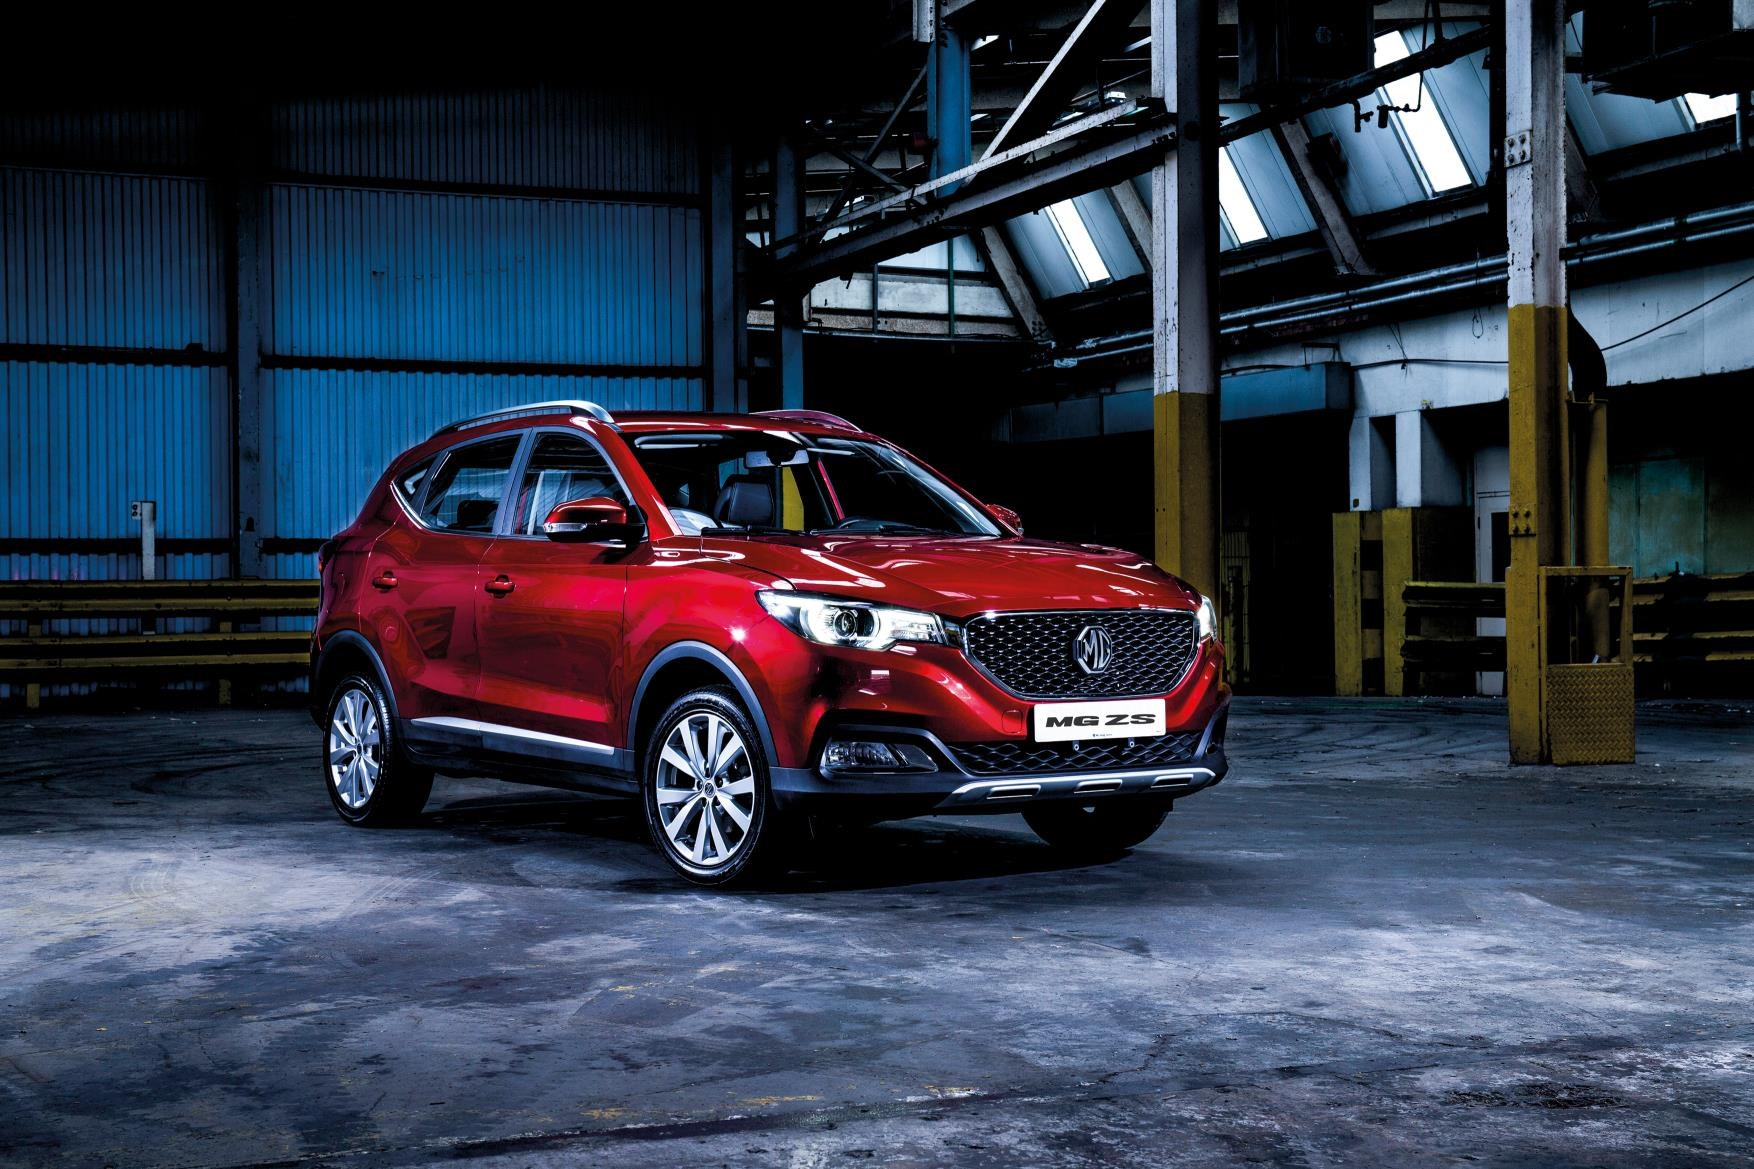 Mg Zs Will Small Suv Be The Car To Help Mg Break The